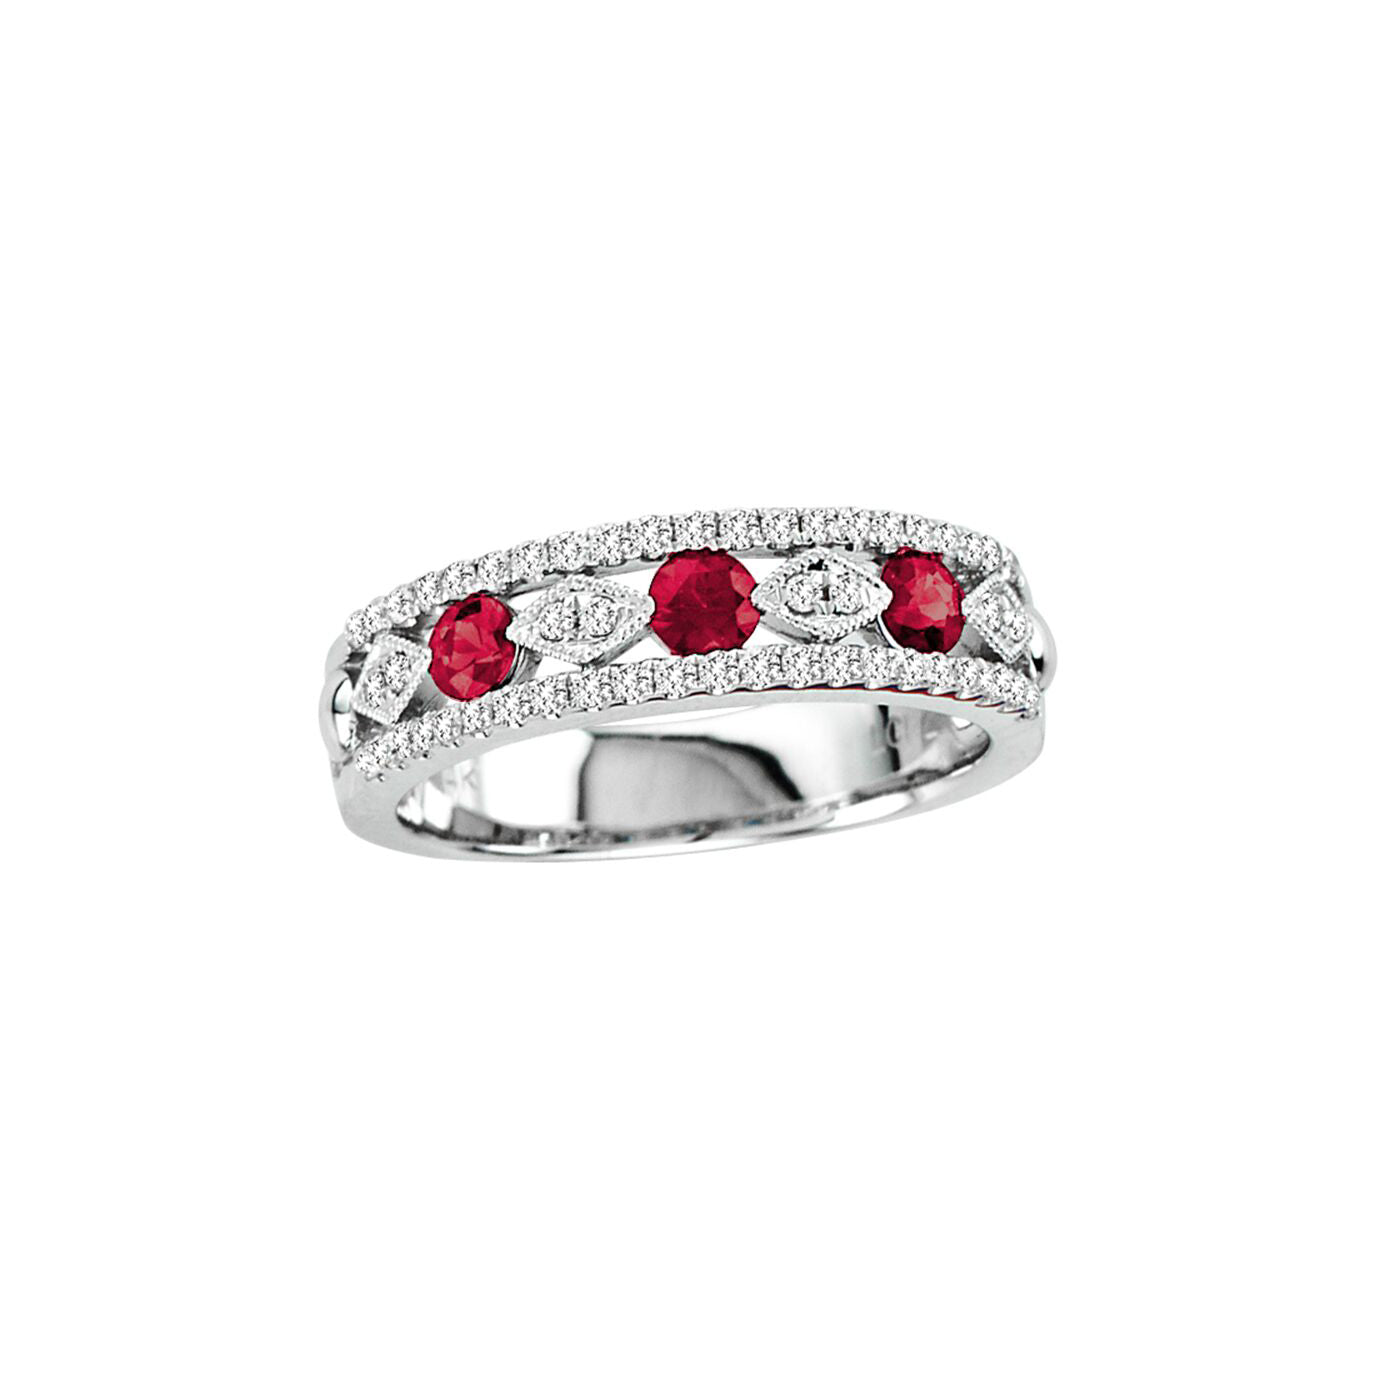 Vintage Look Ruby and Diamond Ring, 14K White Gold